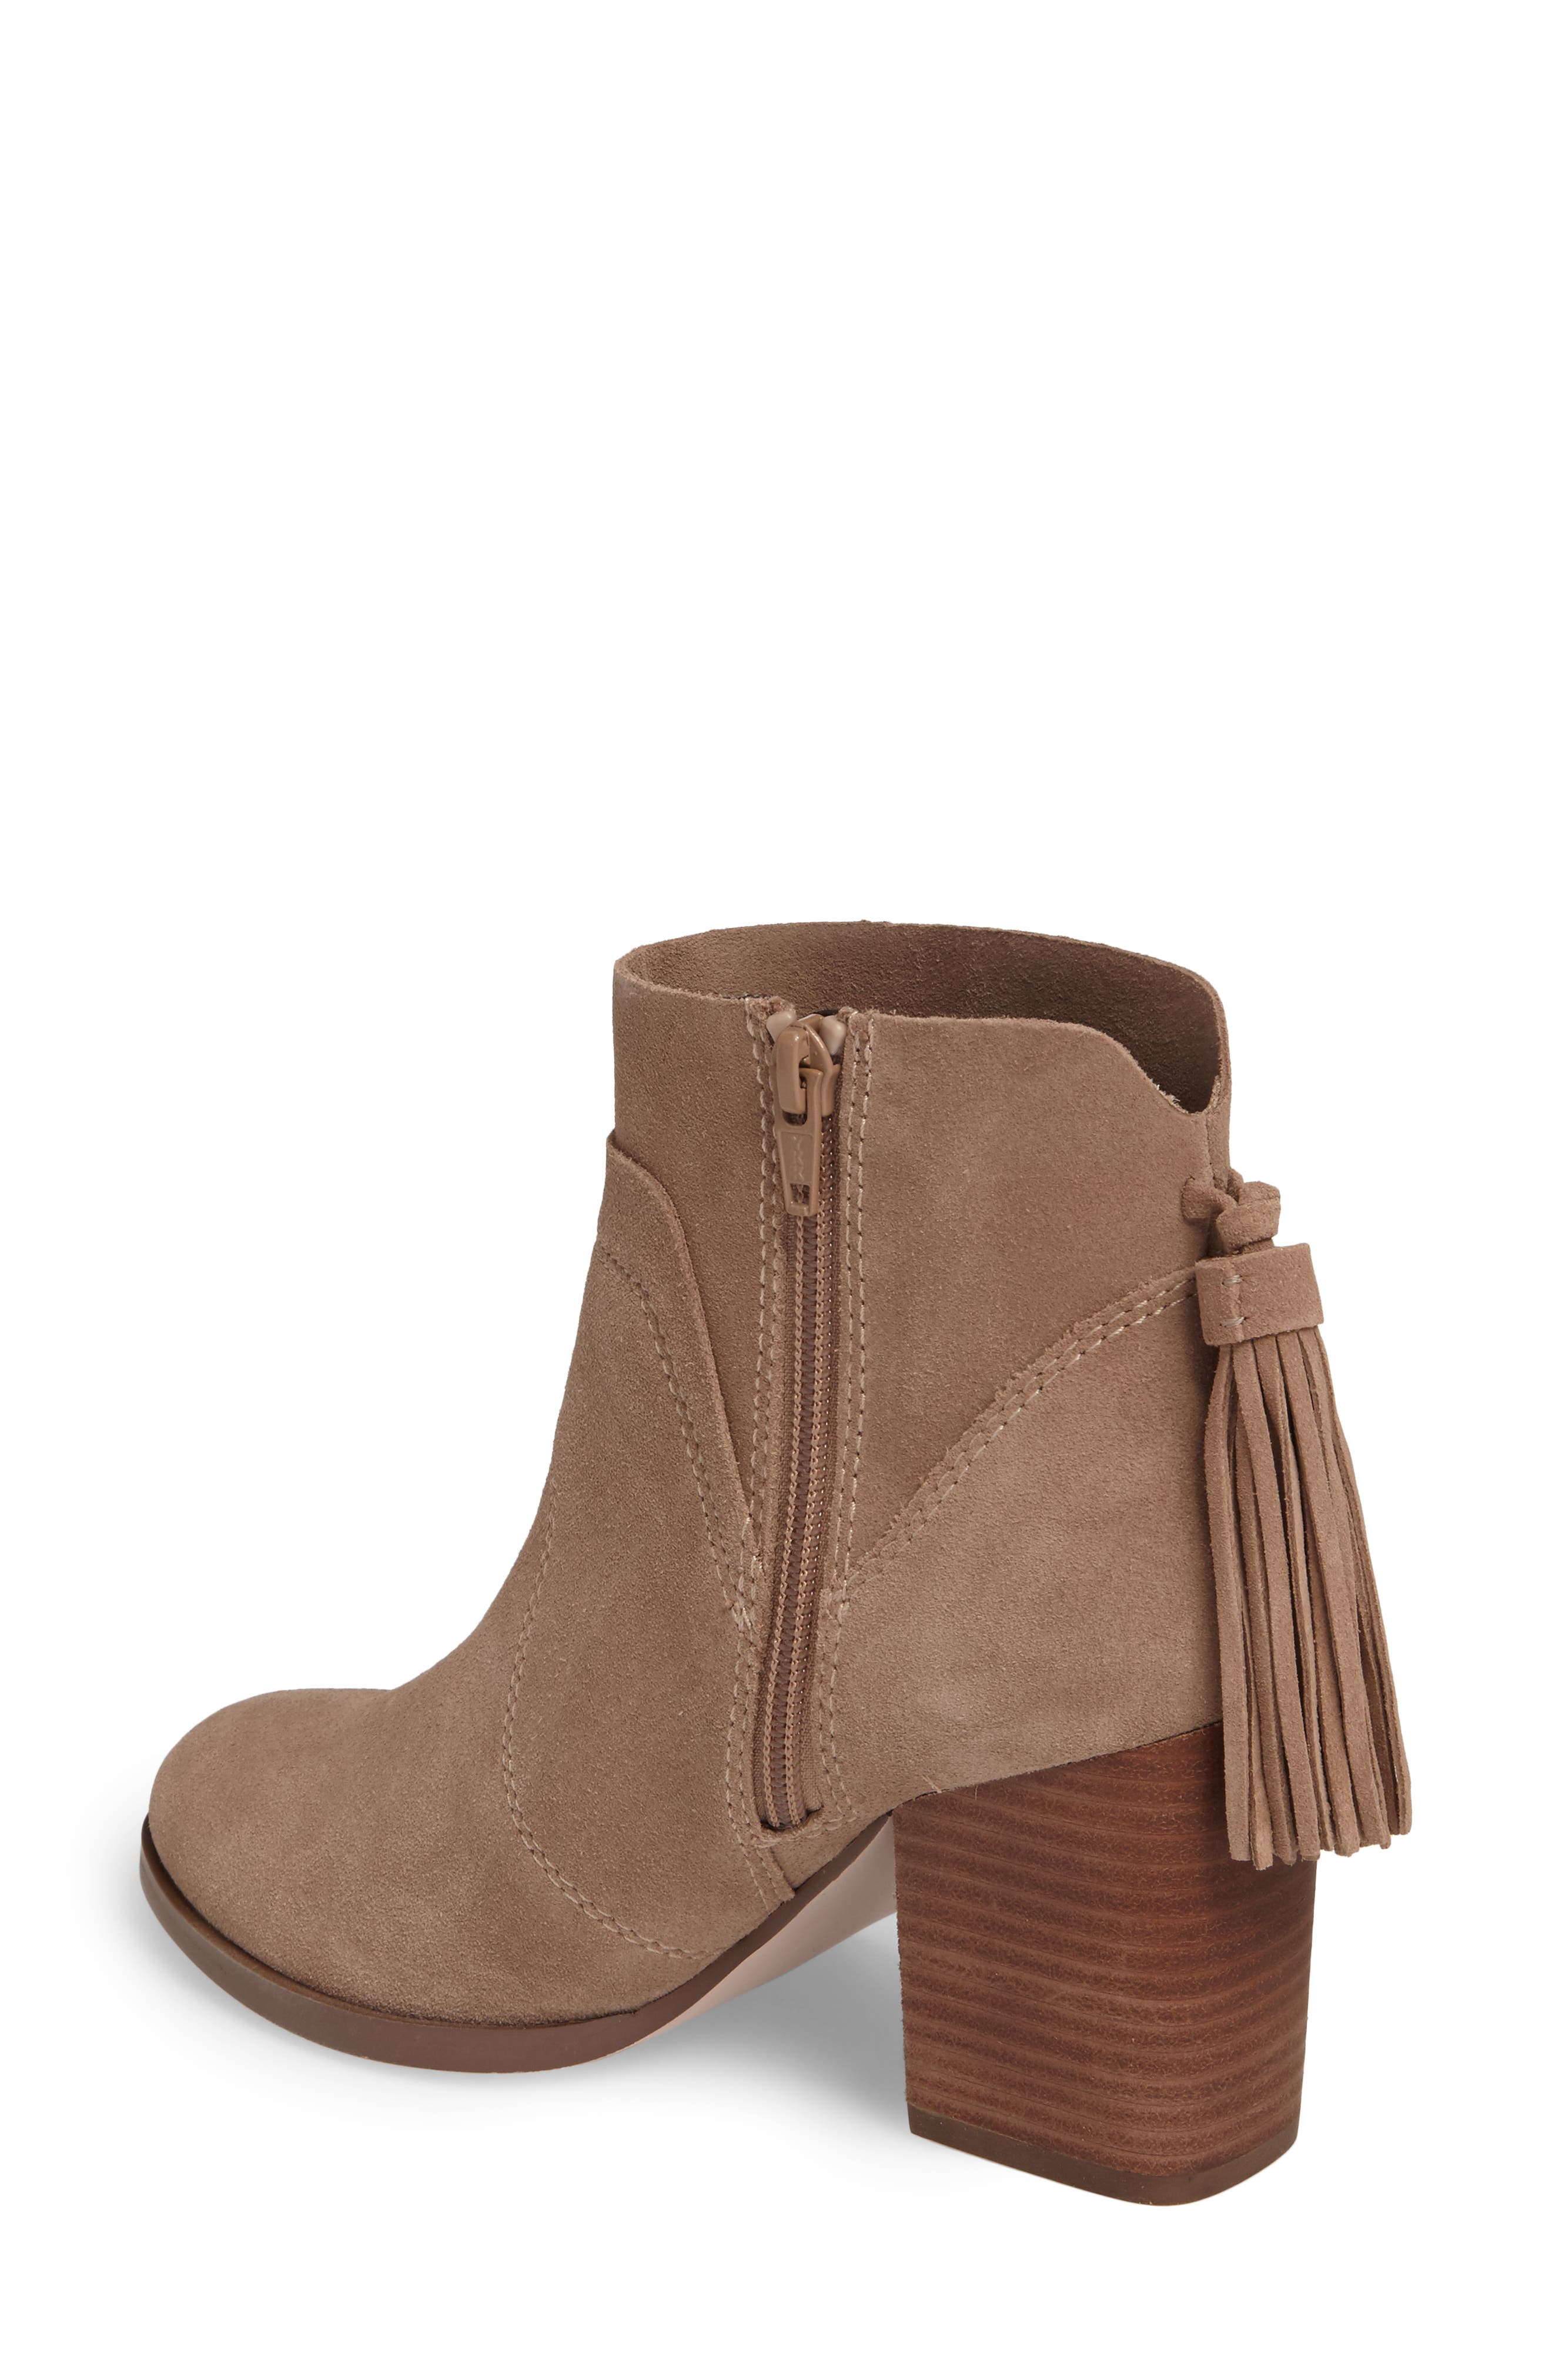 Ambrose Bootie,                             Alternate thumbnail 2, color,                             Taupe